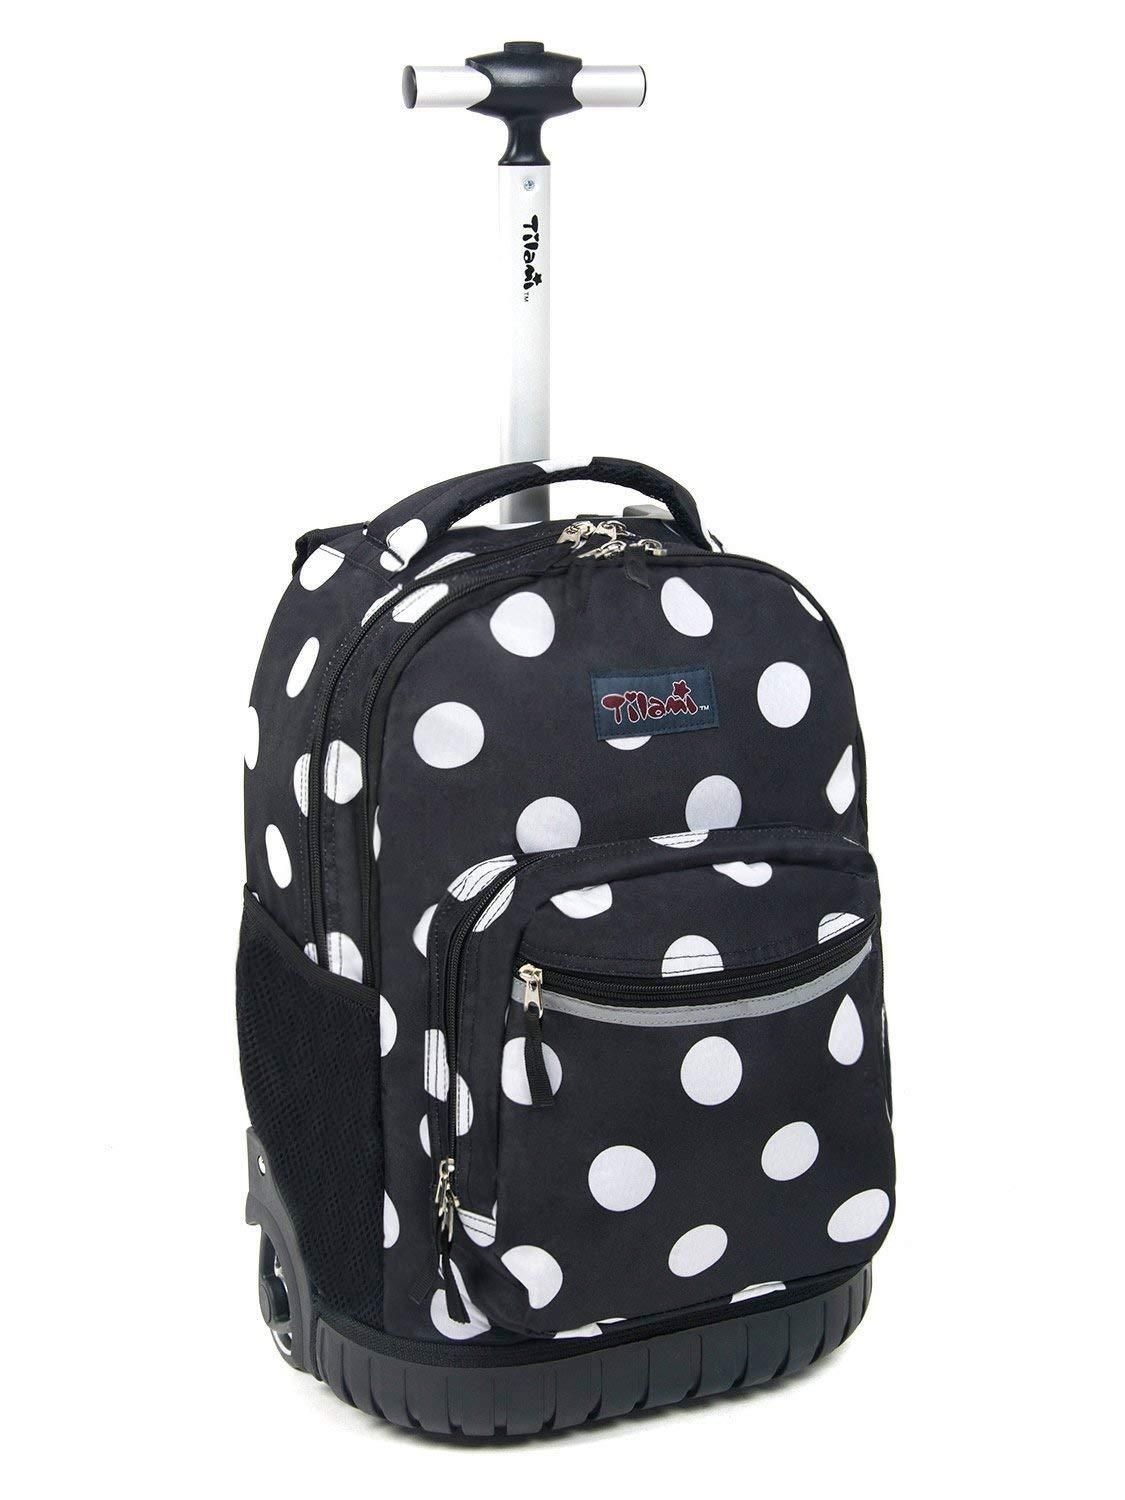 06ec06e4beb6 Tilami Rolling Backpack Armor Luggage School Travel Book Laptop 18 Inch  Multifunction Wheeled Backpack Polo Dots